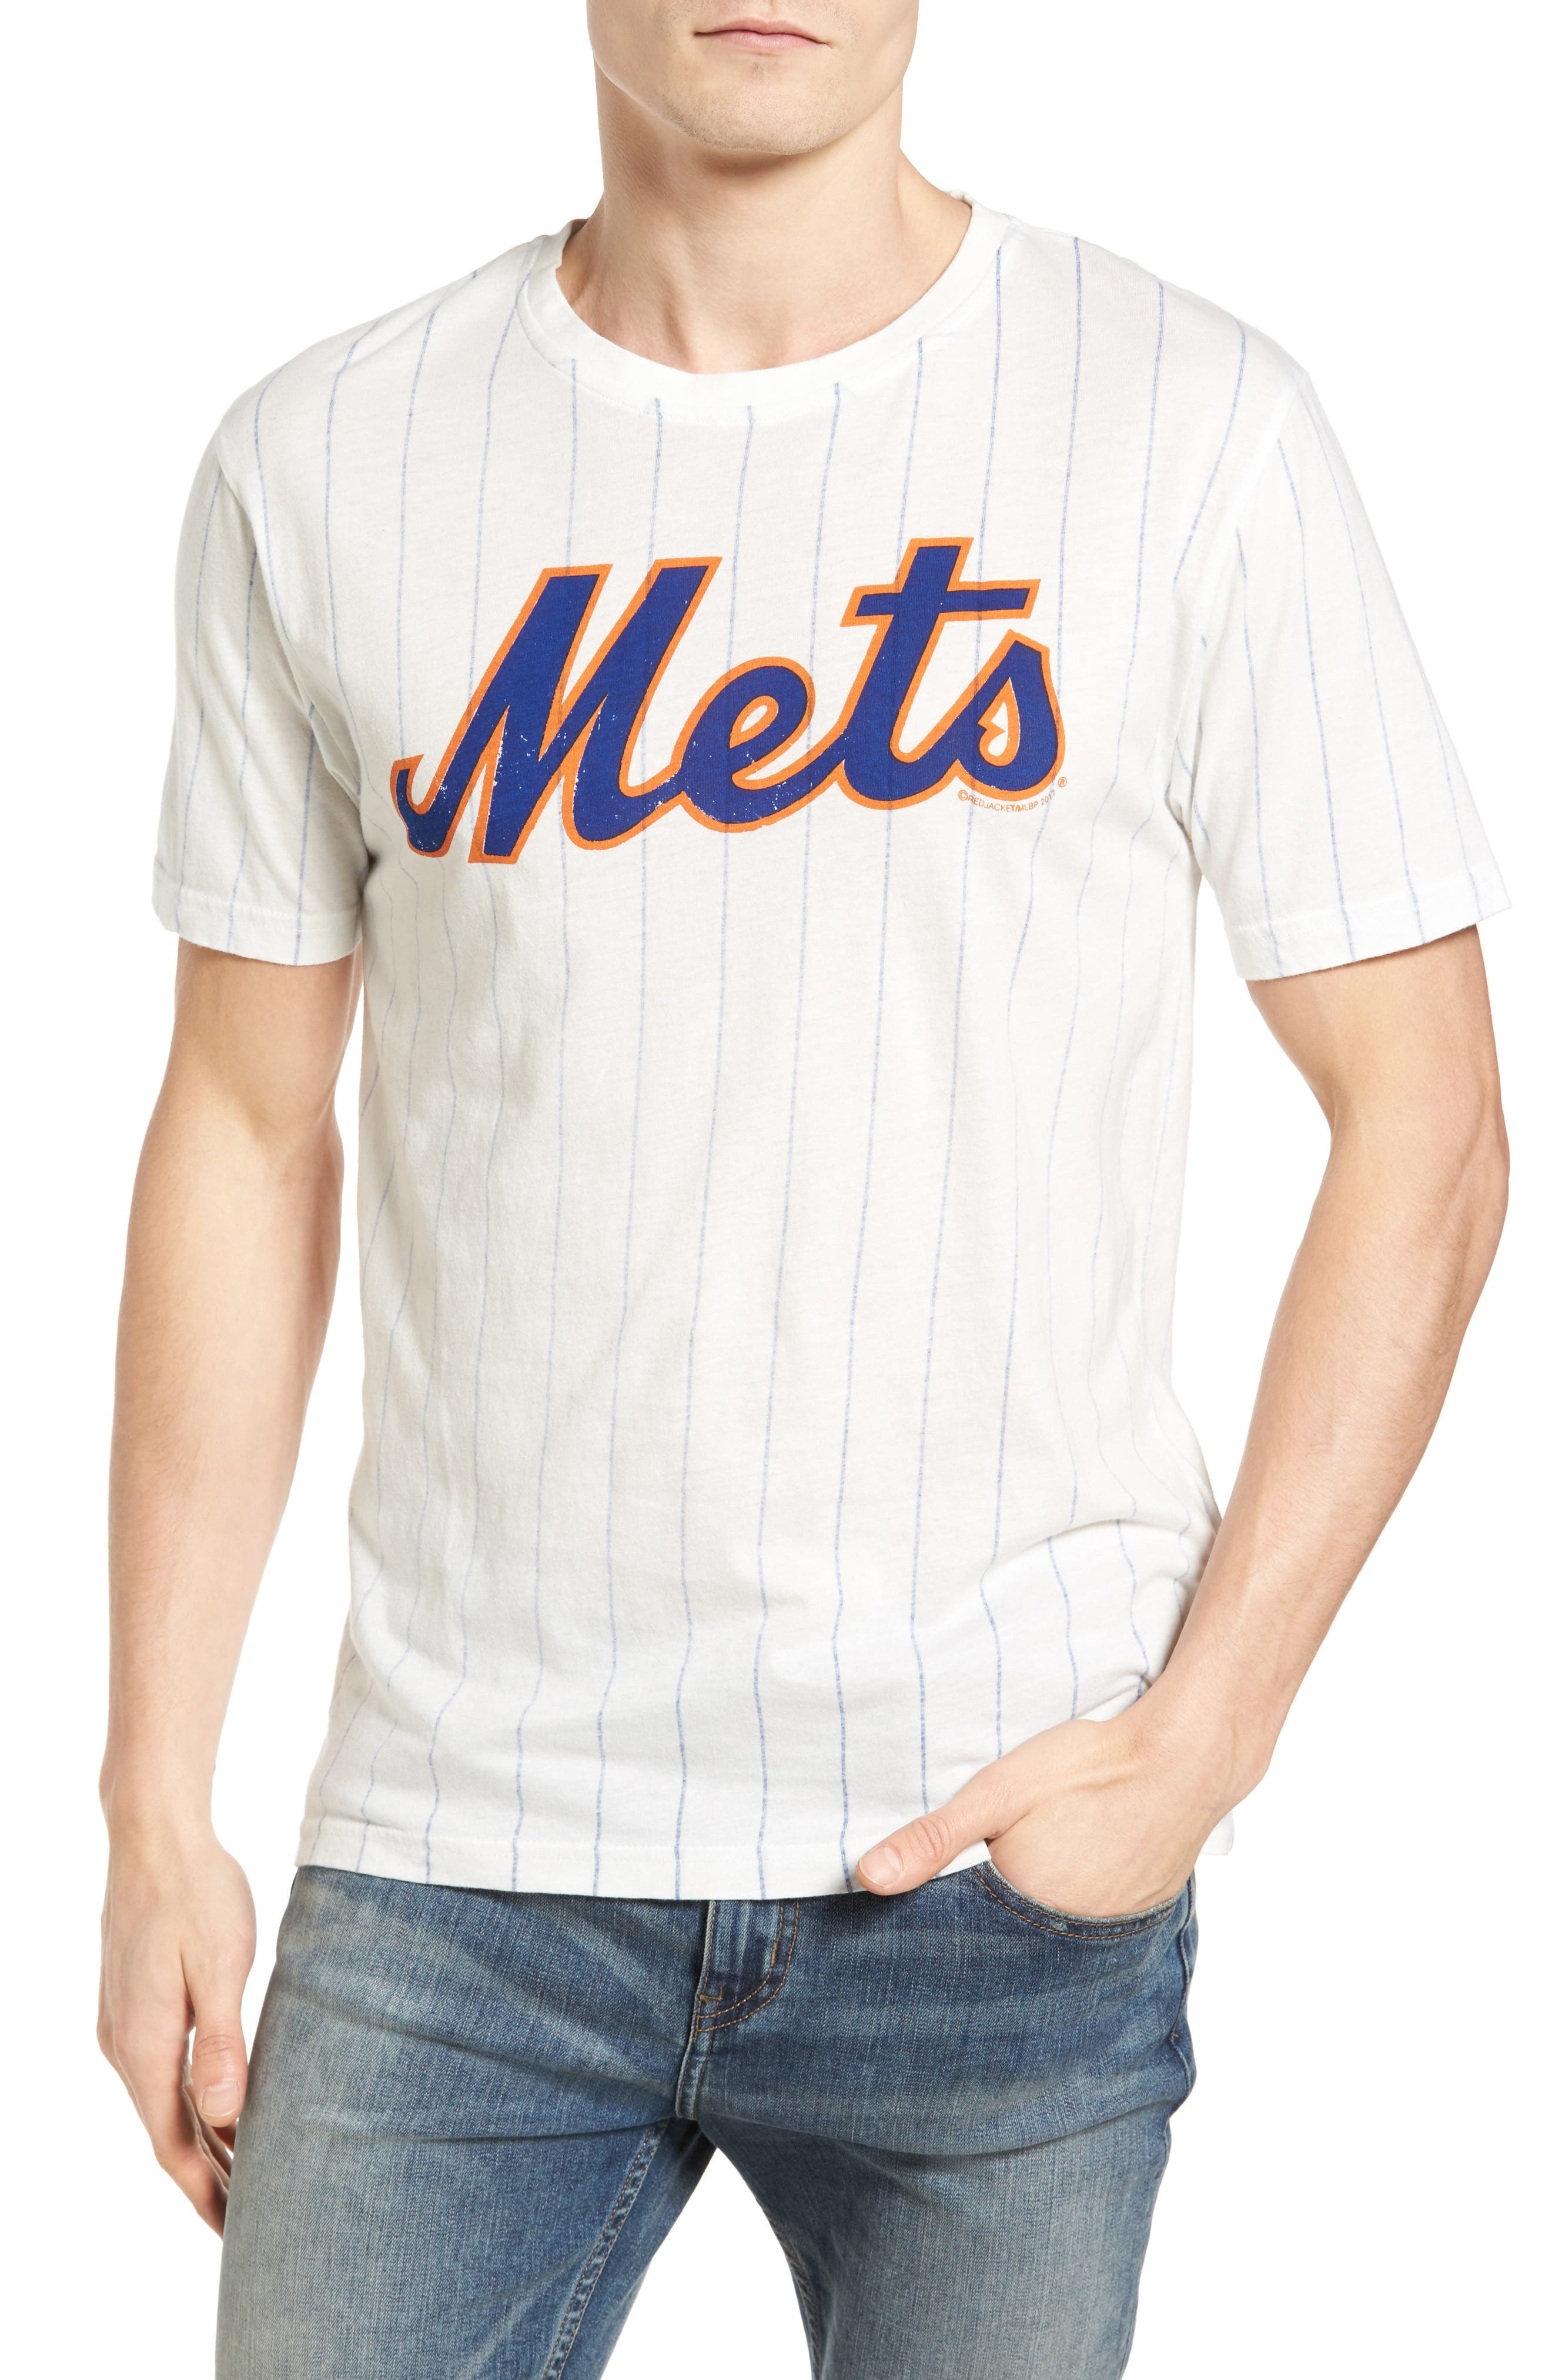 Brass Tack New York Mets T-Shirt,                         Main,                         color, 182